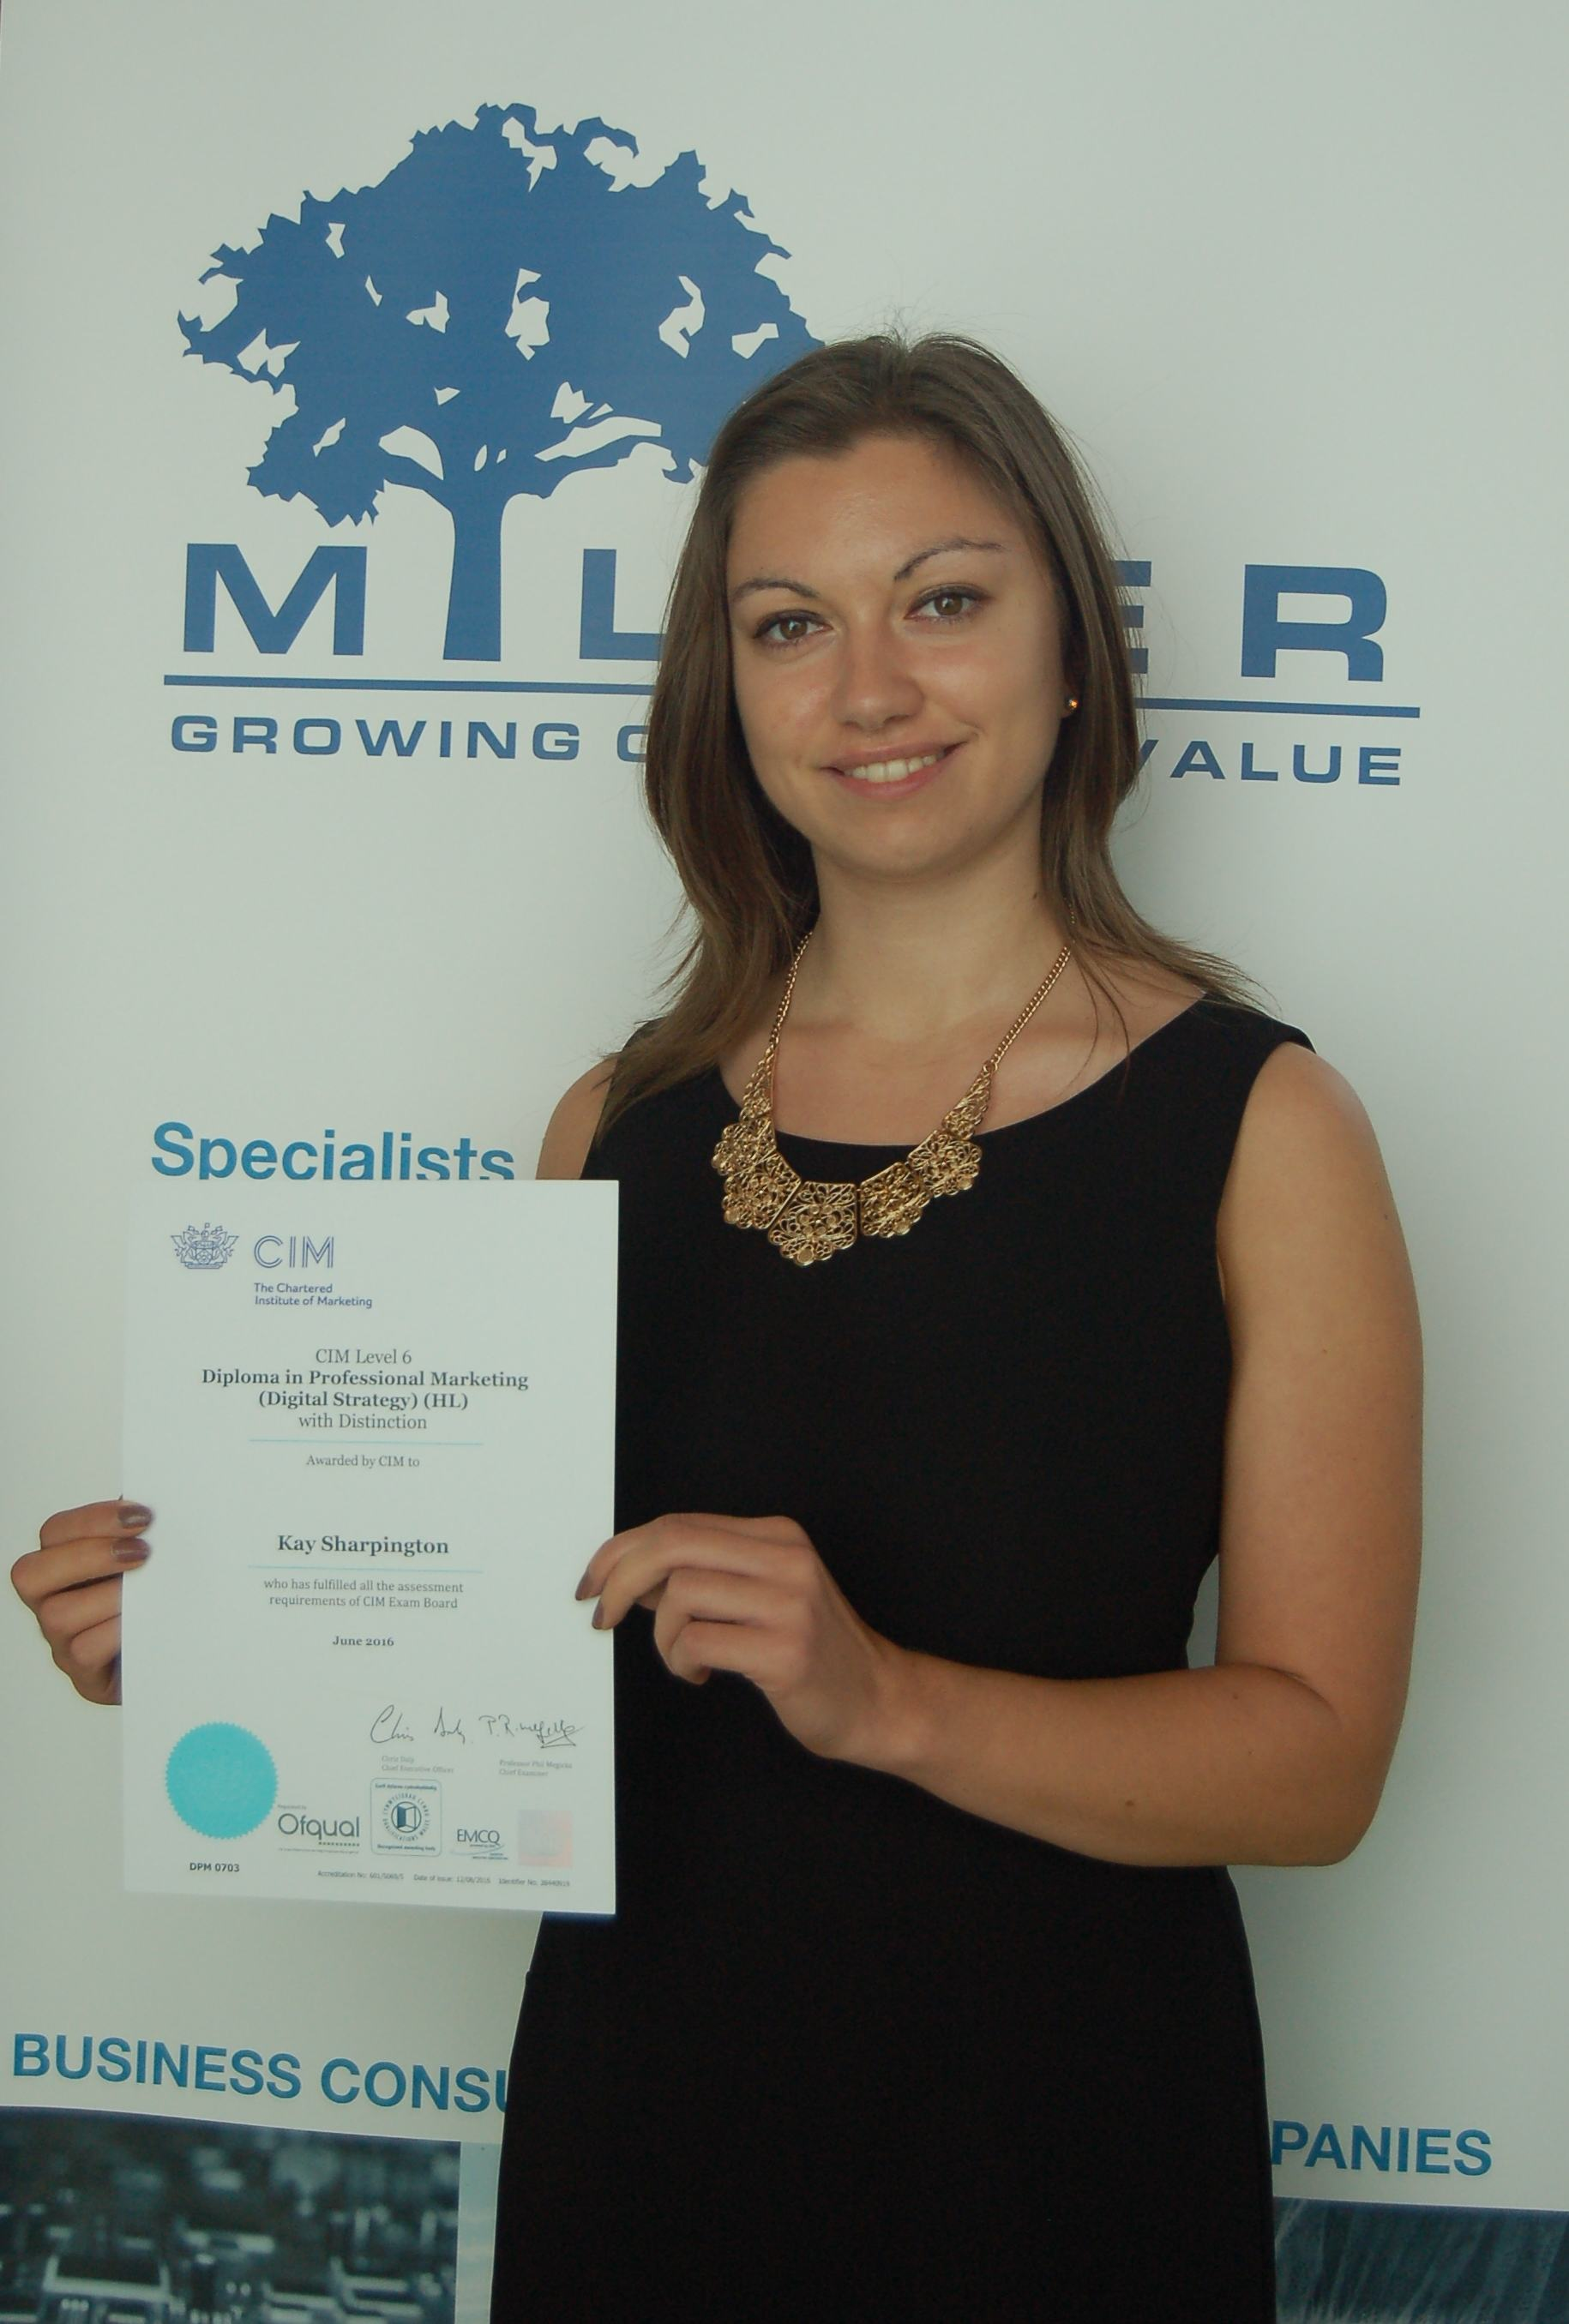 Impressive Marks For Kay In Chartered Institute Of Marketing Diploma